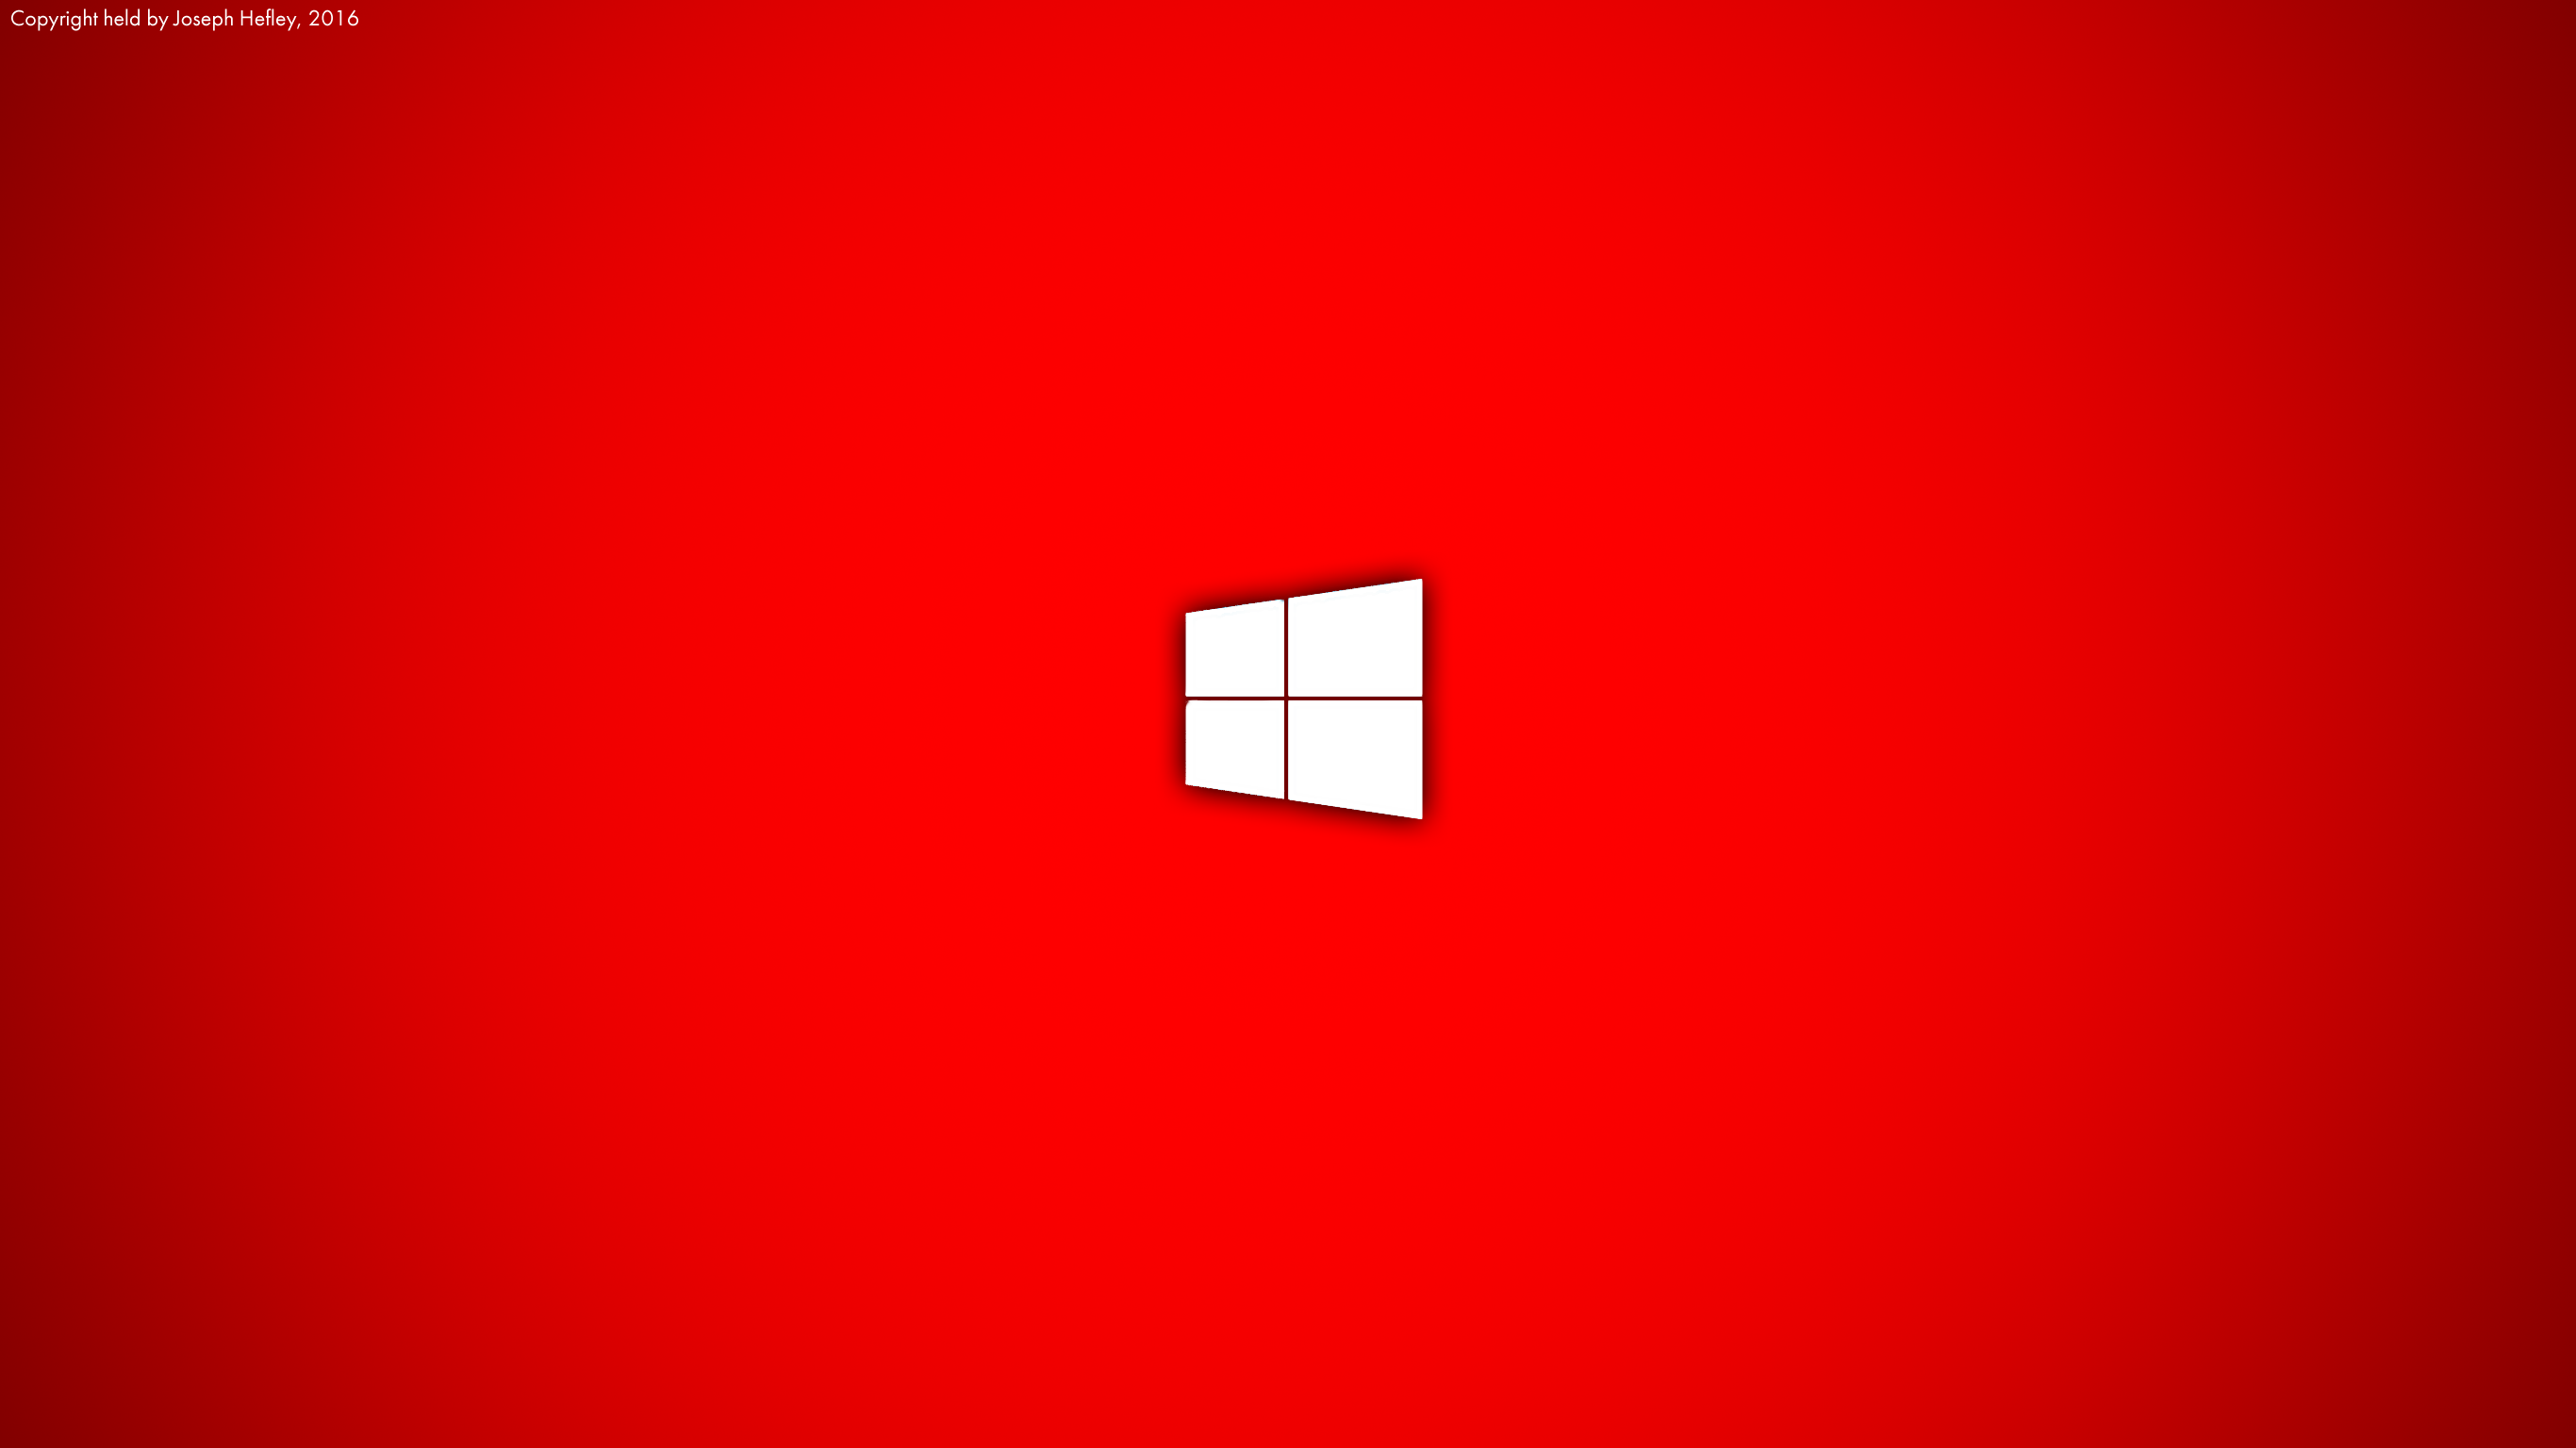 Red Windows 10 Wallpaper (3K/HD) by JoeTPB on DeviantArt